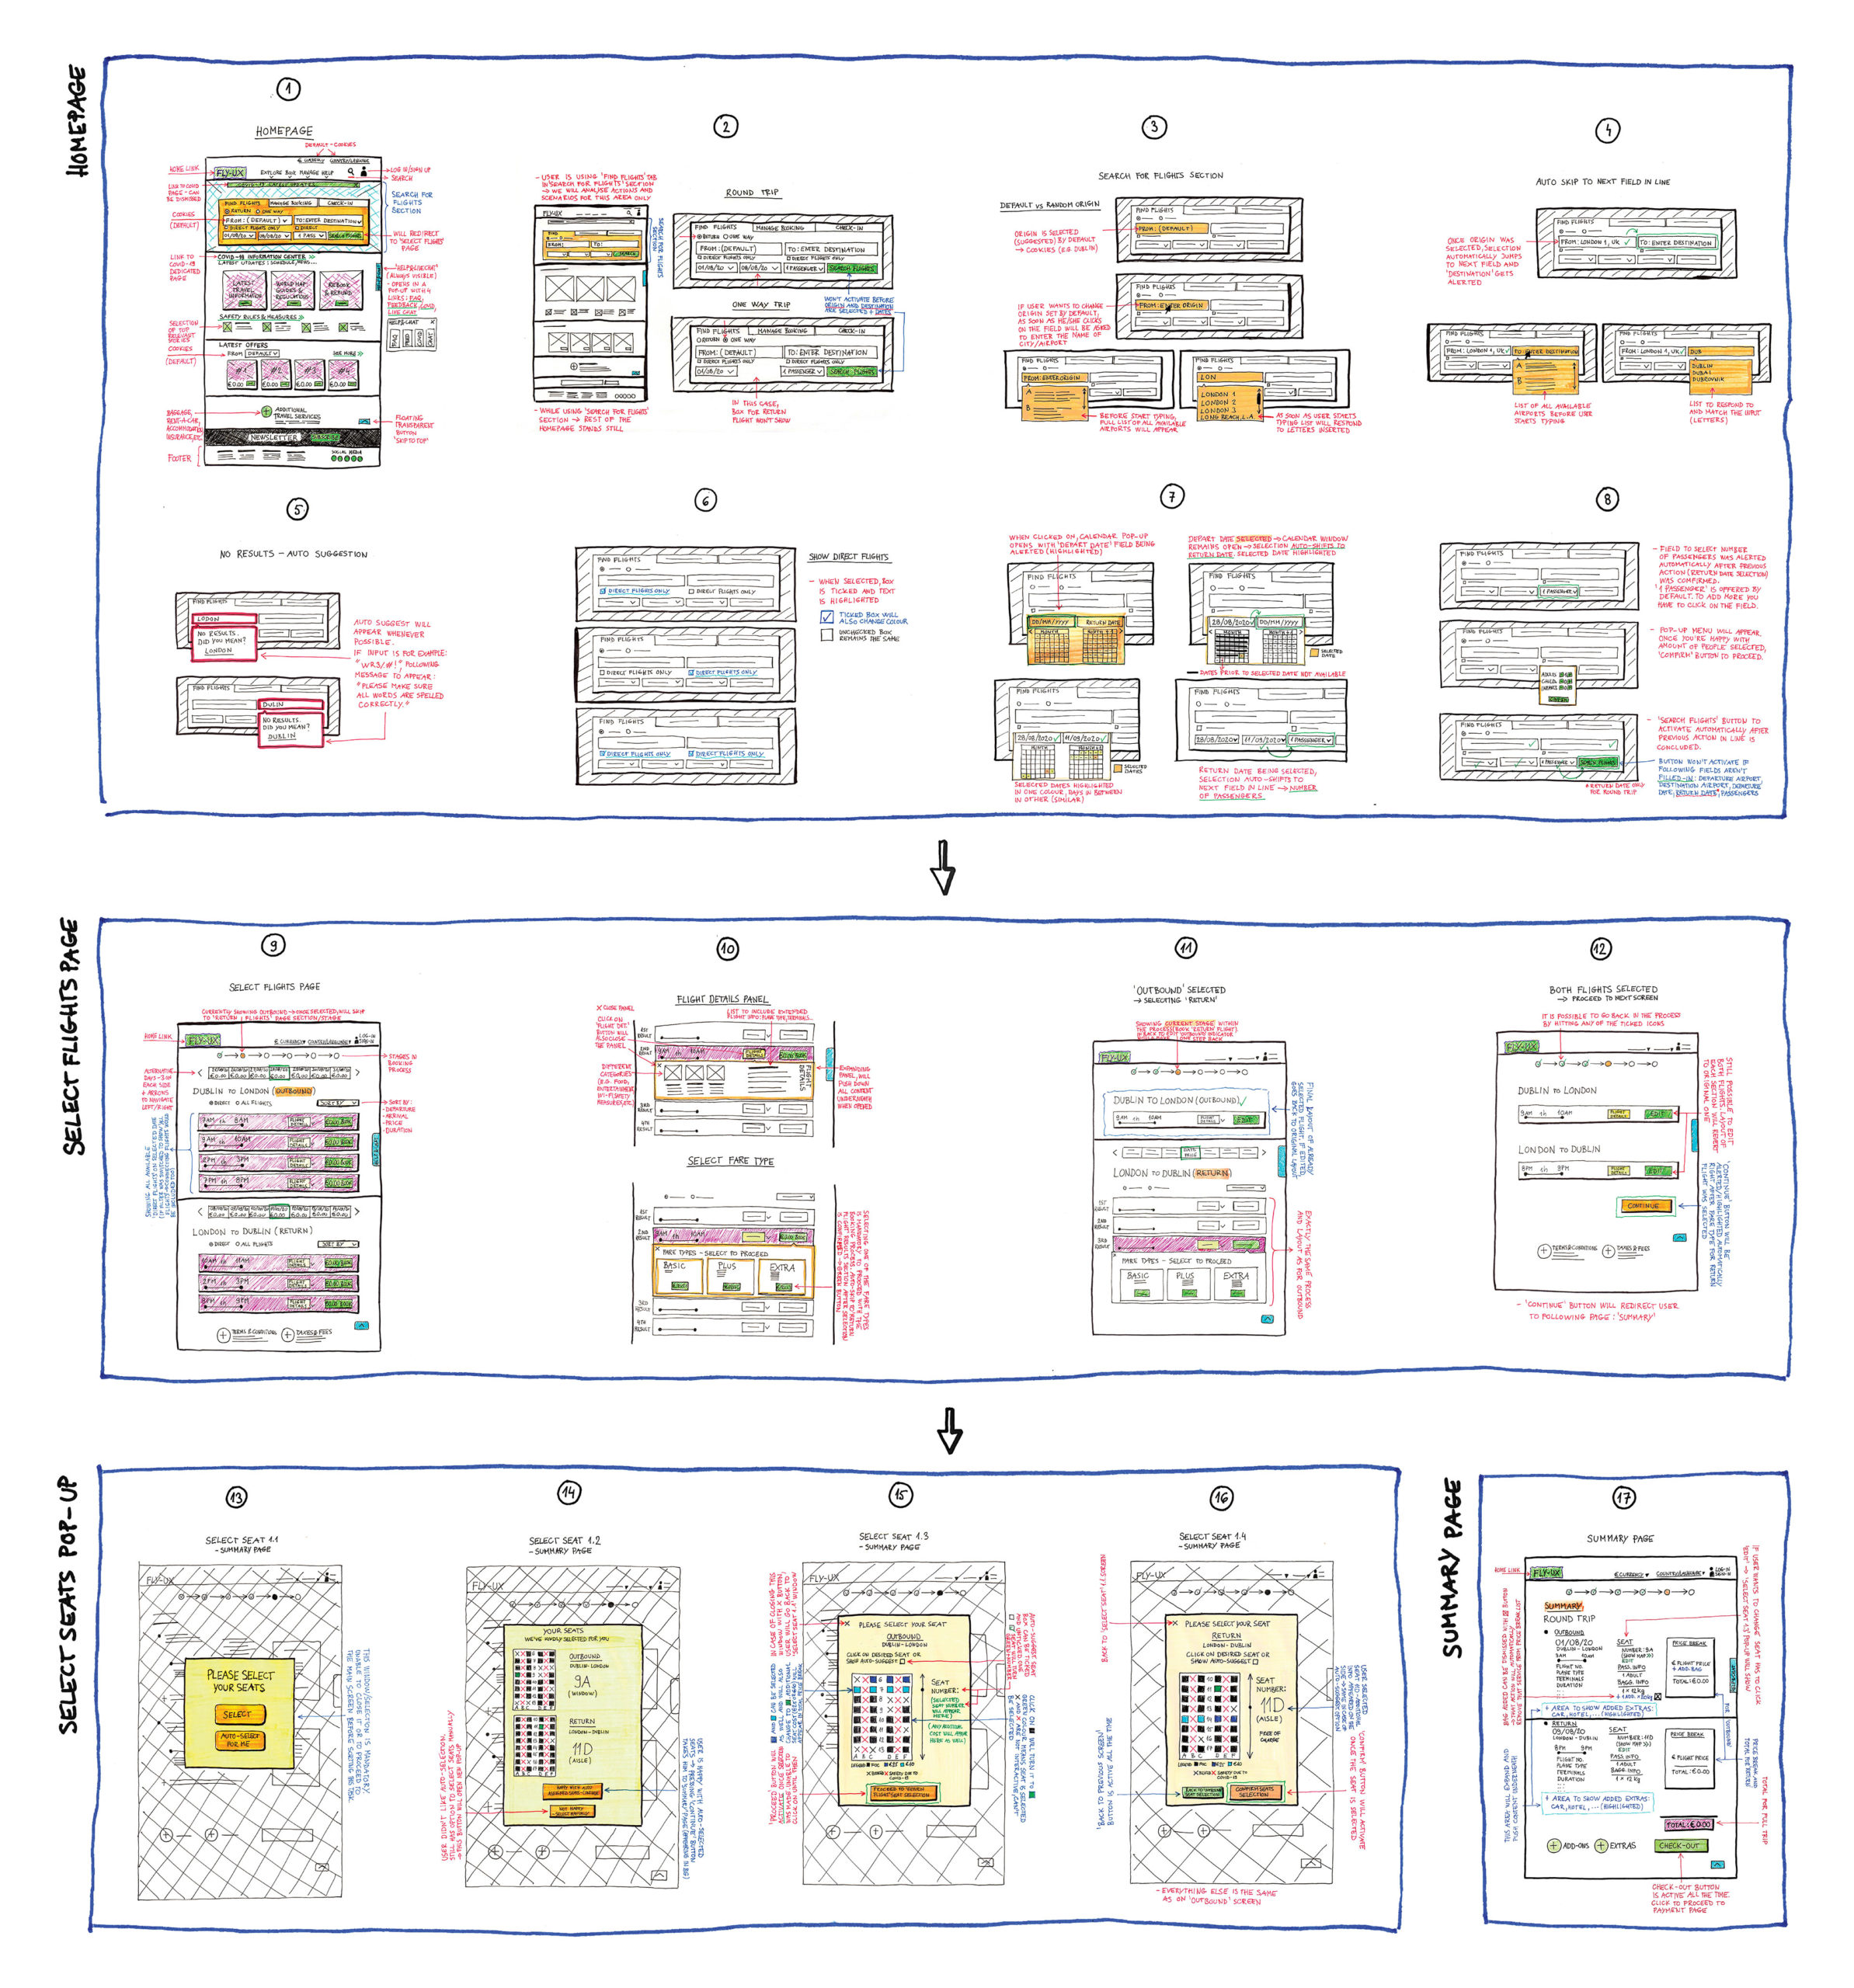 Interaction and navigation design sketches